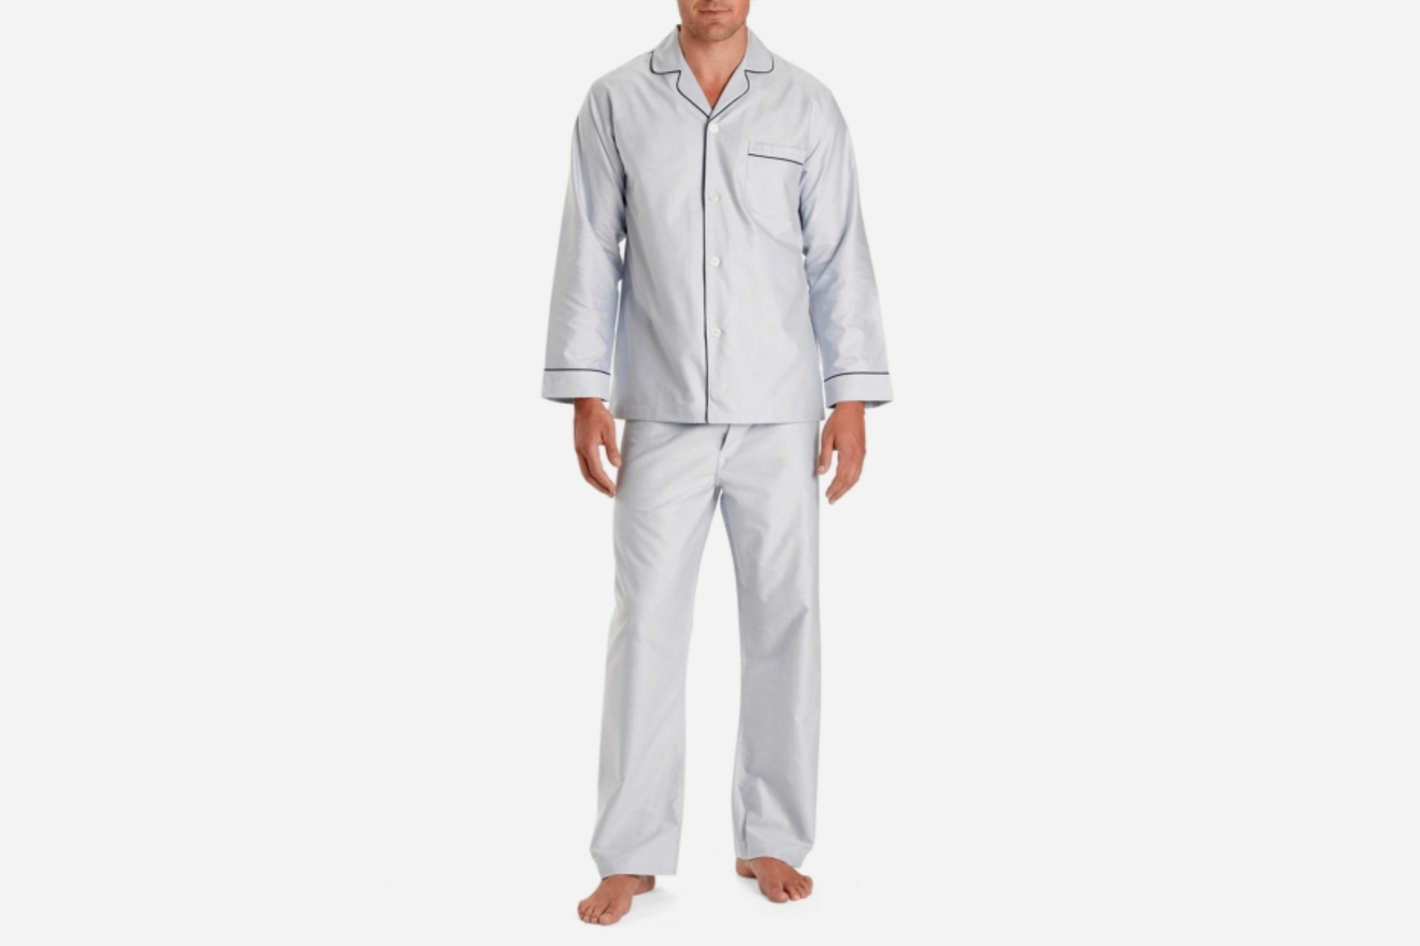 Men's Wrinkle-Resistant Oxford Pajamas